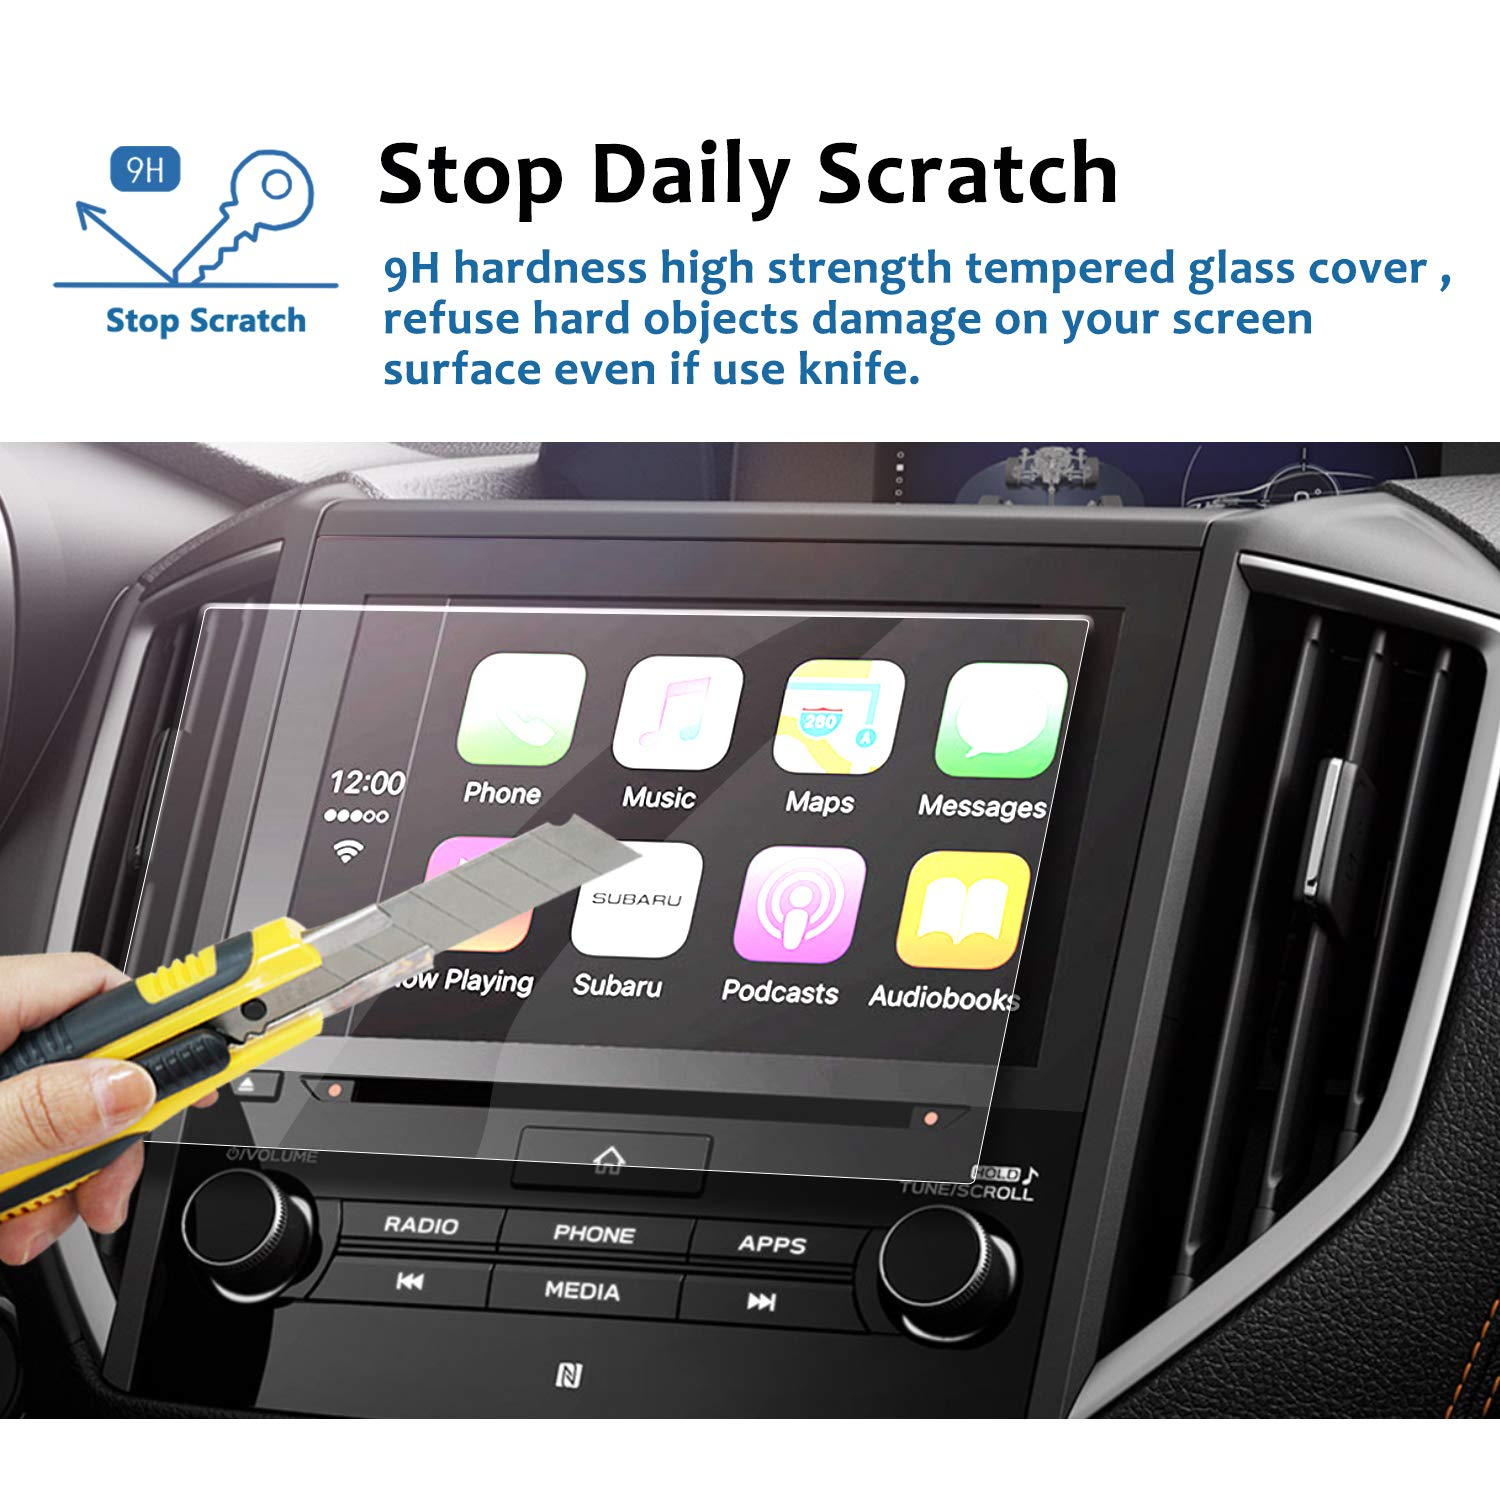 Tempered Glass Infotainment Center Touch Display Screen Protector Anti Scratch High Clarity LFOTPP 2018 Subaru Crosstrek Impreza Starlink 6.5 Inch Car Navigation Screen Protector, 9H